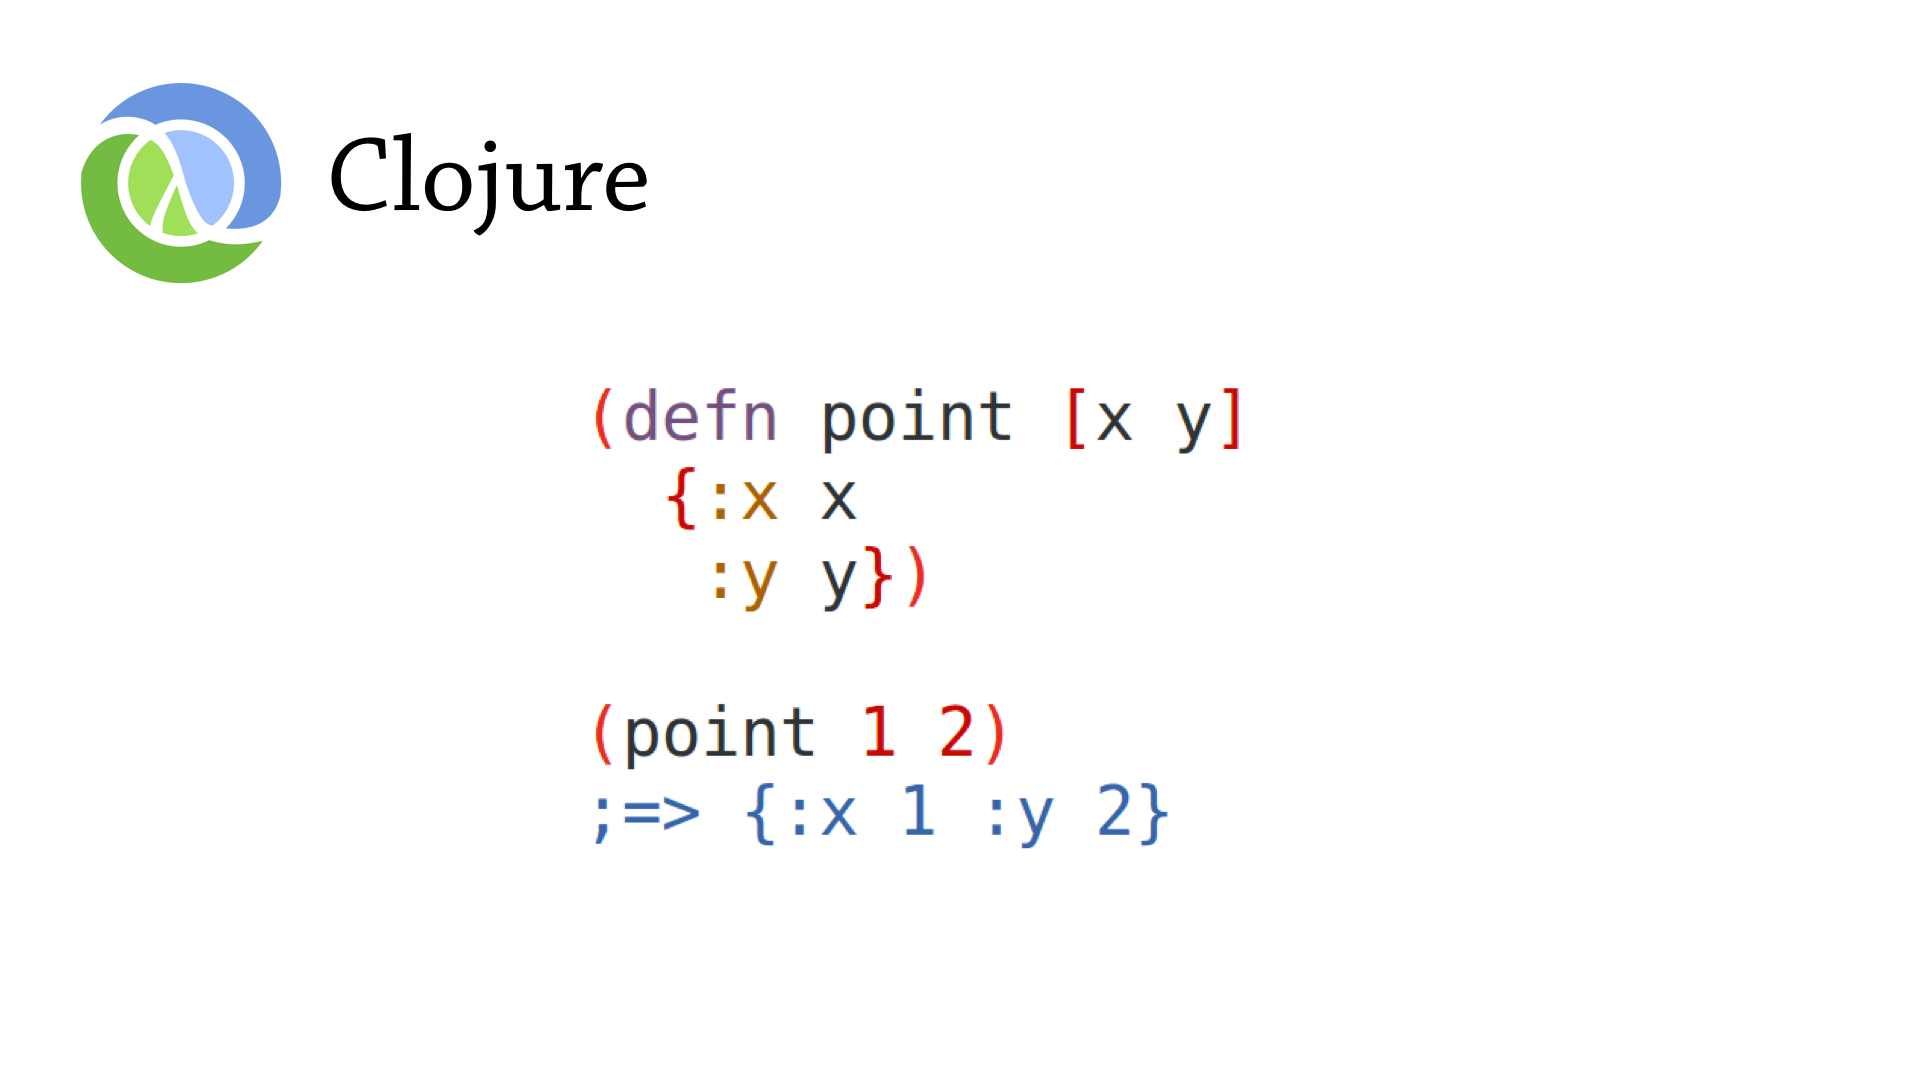 Defining a point in Clojure